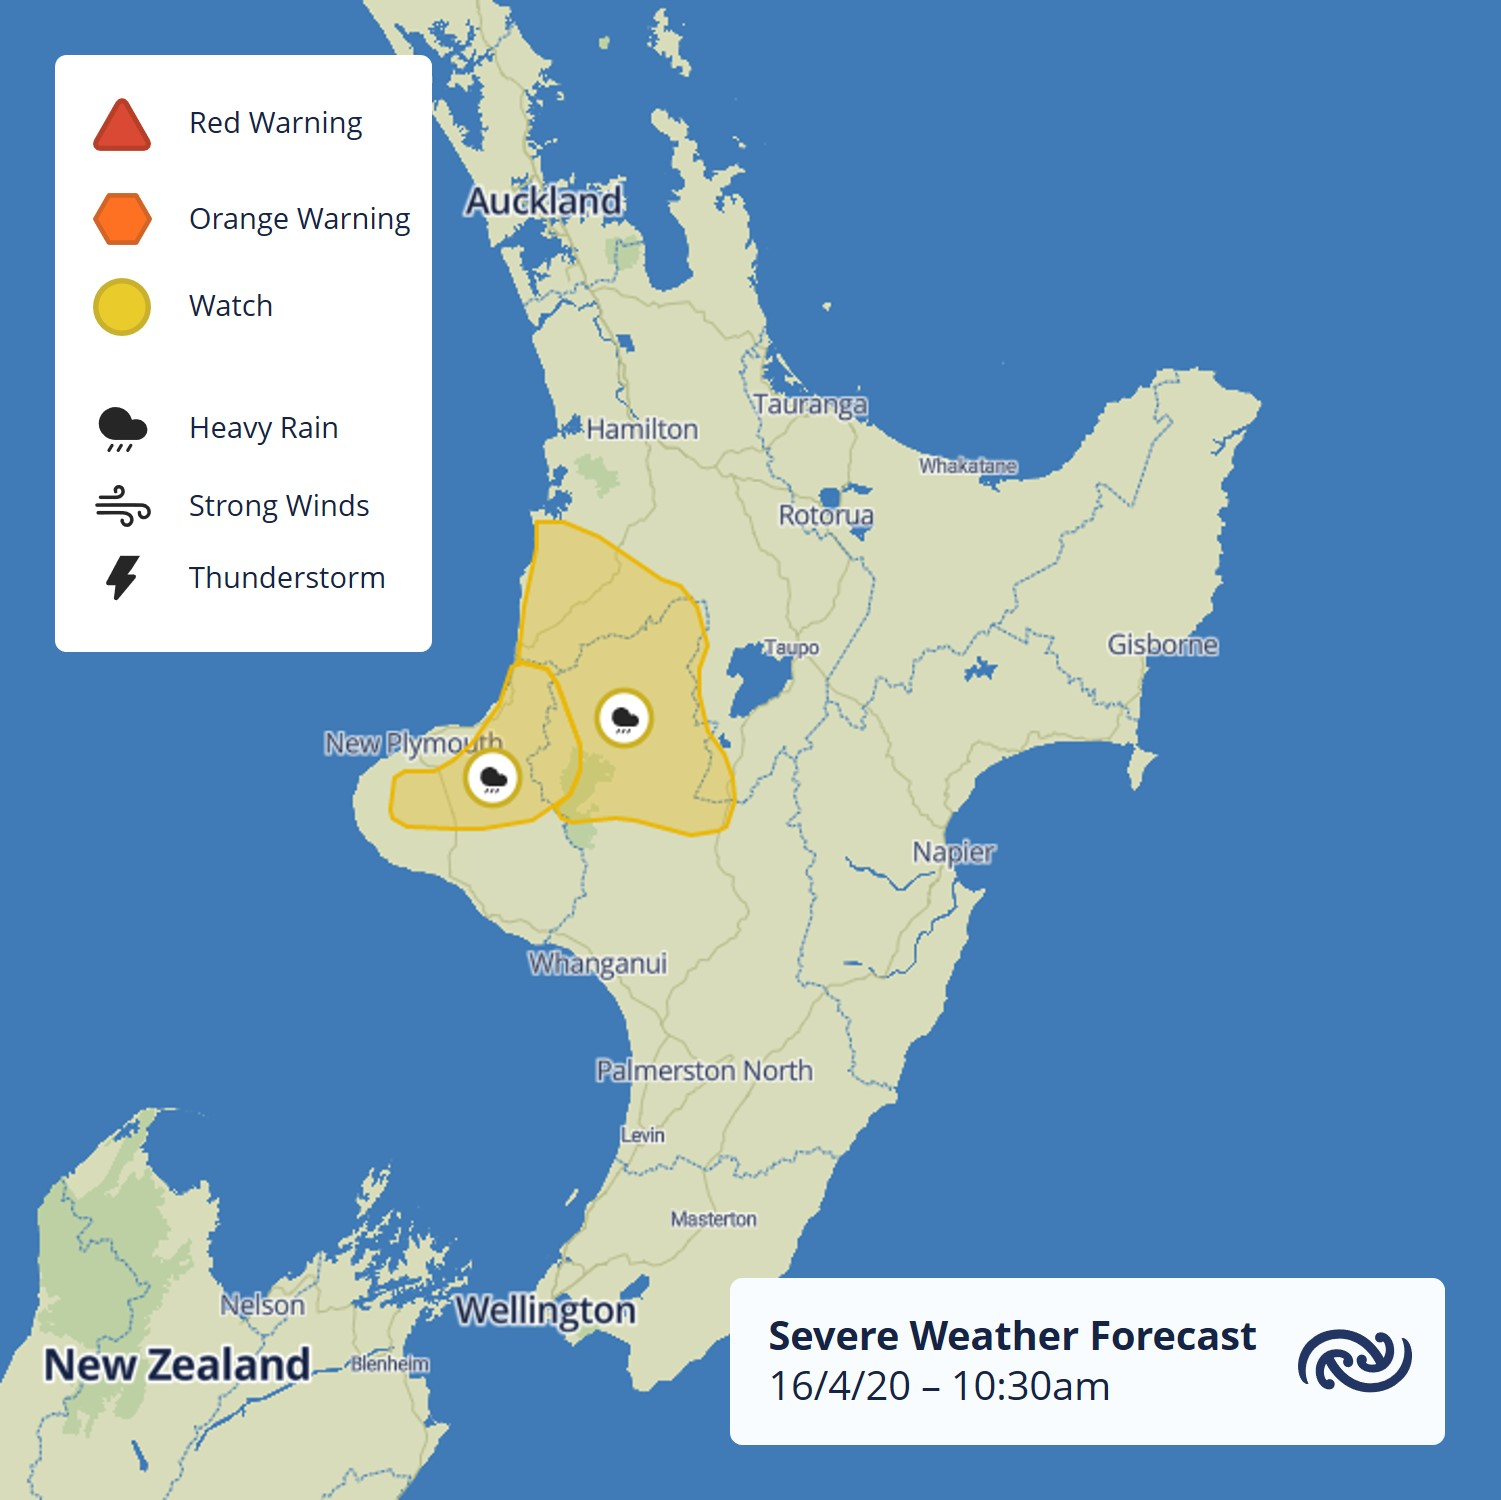 West is Wettest   The majority of Aotearoa will see some wet and windy weather starting tomorrow and through the weekend. Thunderstorms and prolonged rain could see accumulations approach warning criteria for these areas shown.   More information at metservice.com/warnings/home ^Lewis https://t.co/sNpmn1q7EC